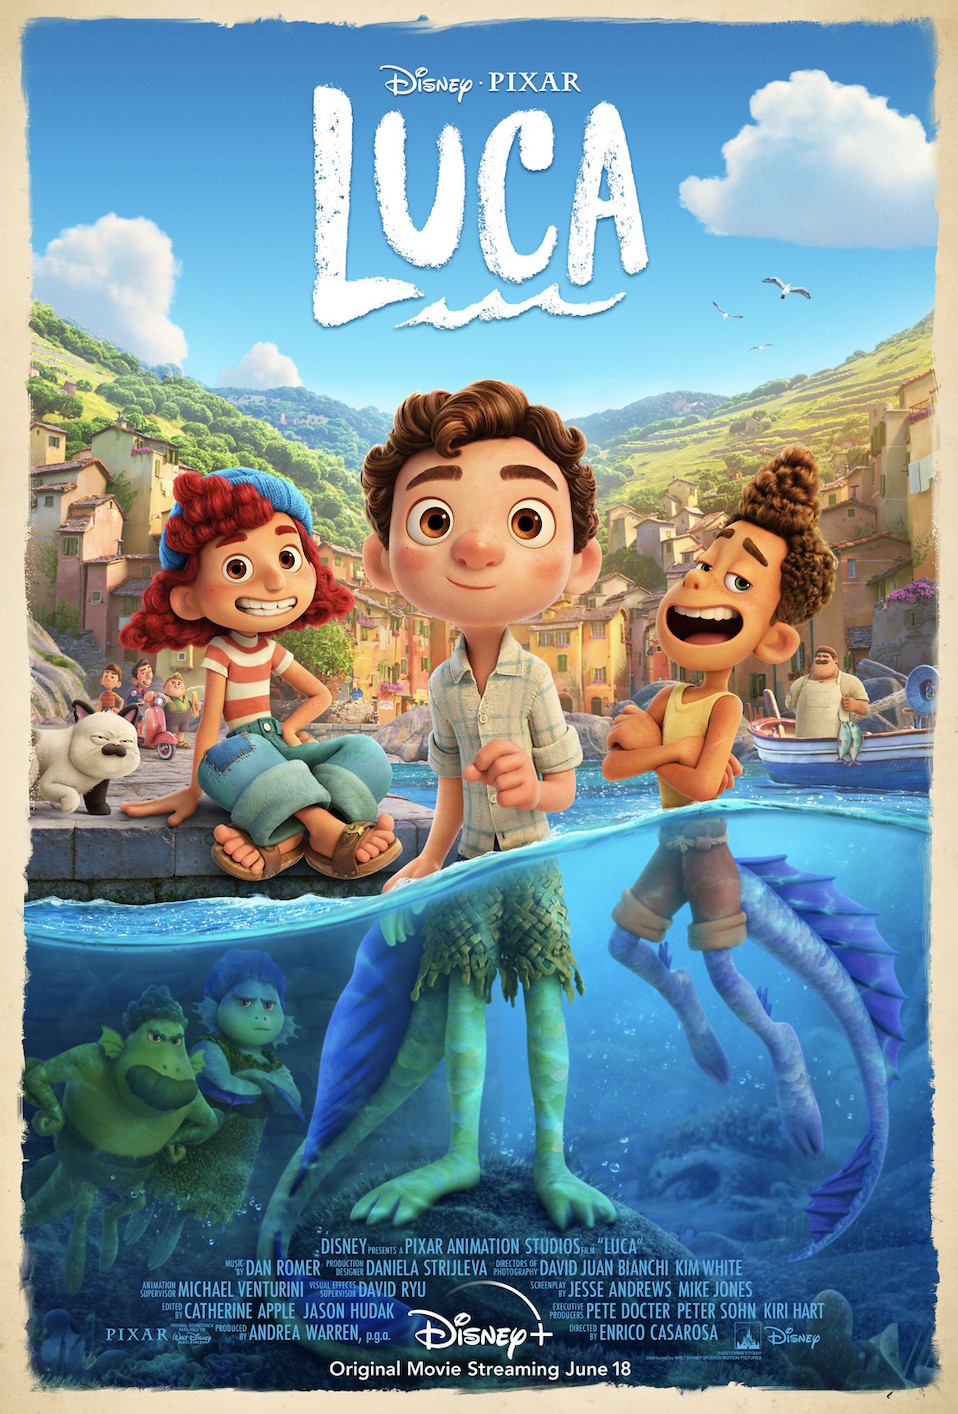 the poster for luca, revealing a boy standing at the center. his feet are in water and they are scaly and sea monster-like, next to him is a smiling boy with the same sea monster bottom, and a girl on land